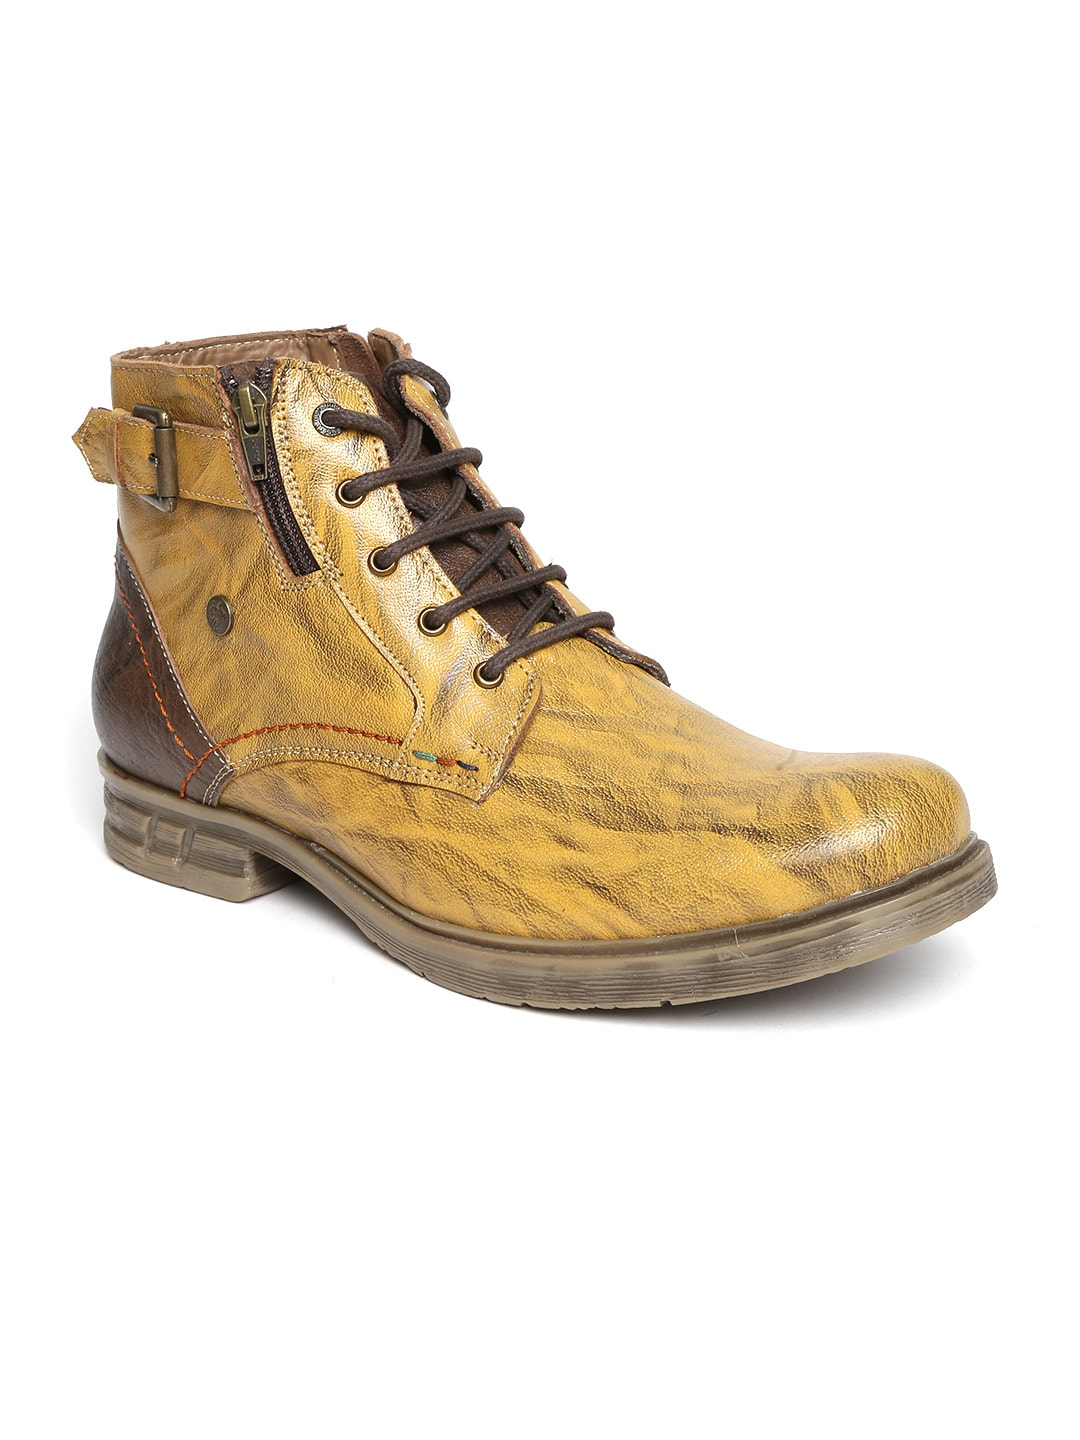 Buckaroo Men Mustard Yellow Printed Leather Boots image